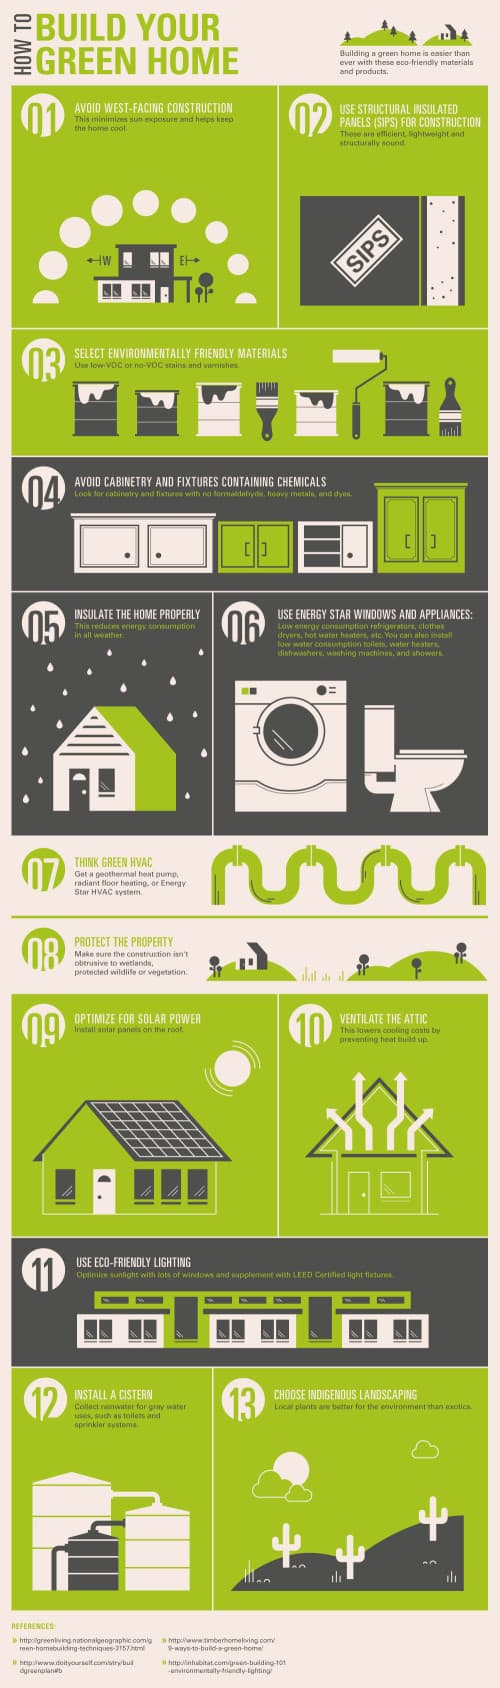 13 tips for building a green home infographic green for Steps to building a house checklist